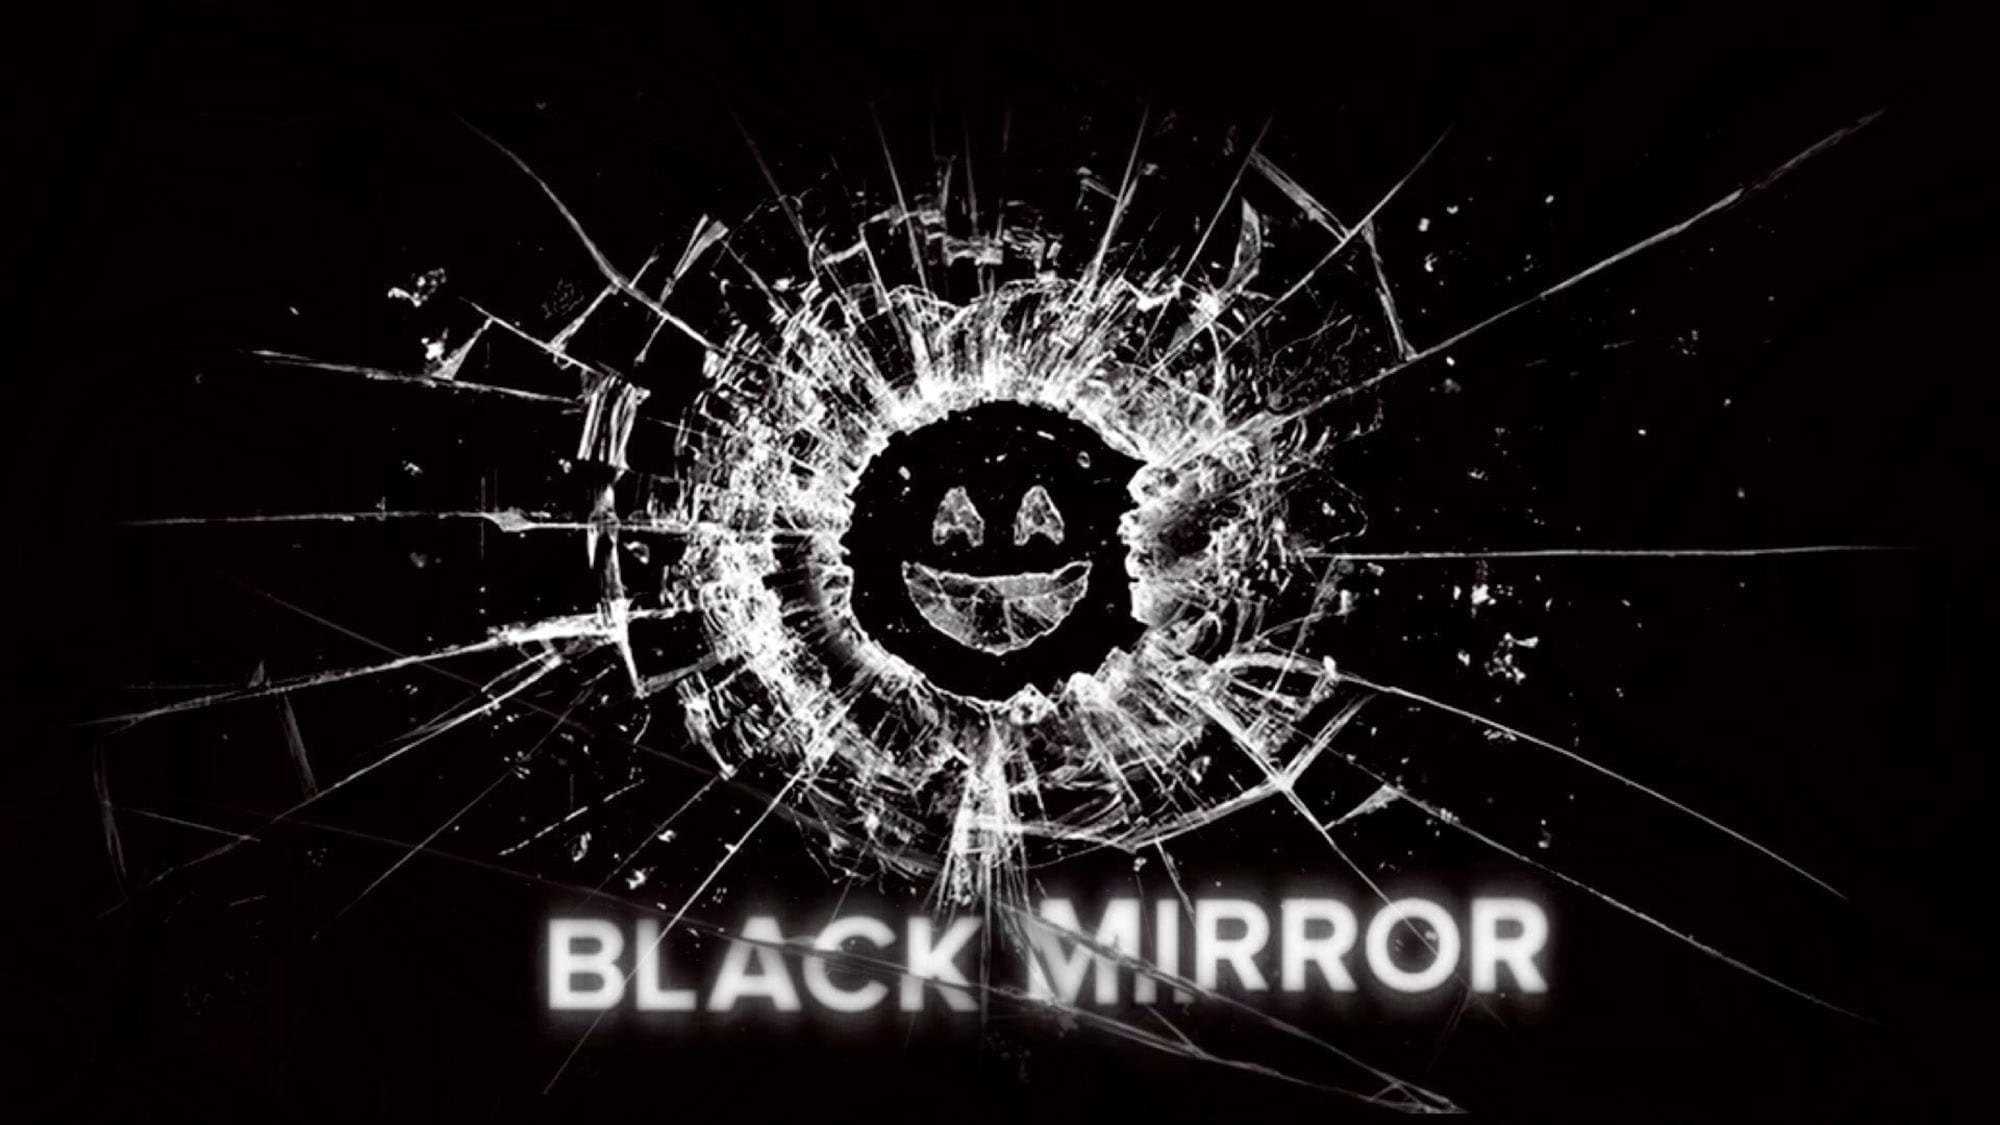 While you're bingewatching 'Black Mirror', plan ahead with the best TV anthologies to keep yourthirst quenched. Slurp!